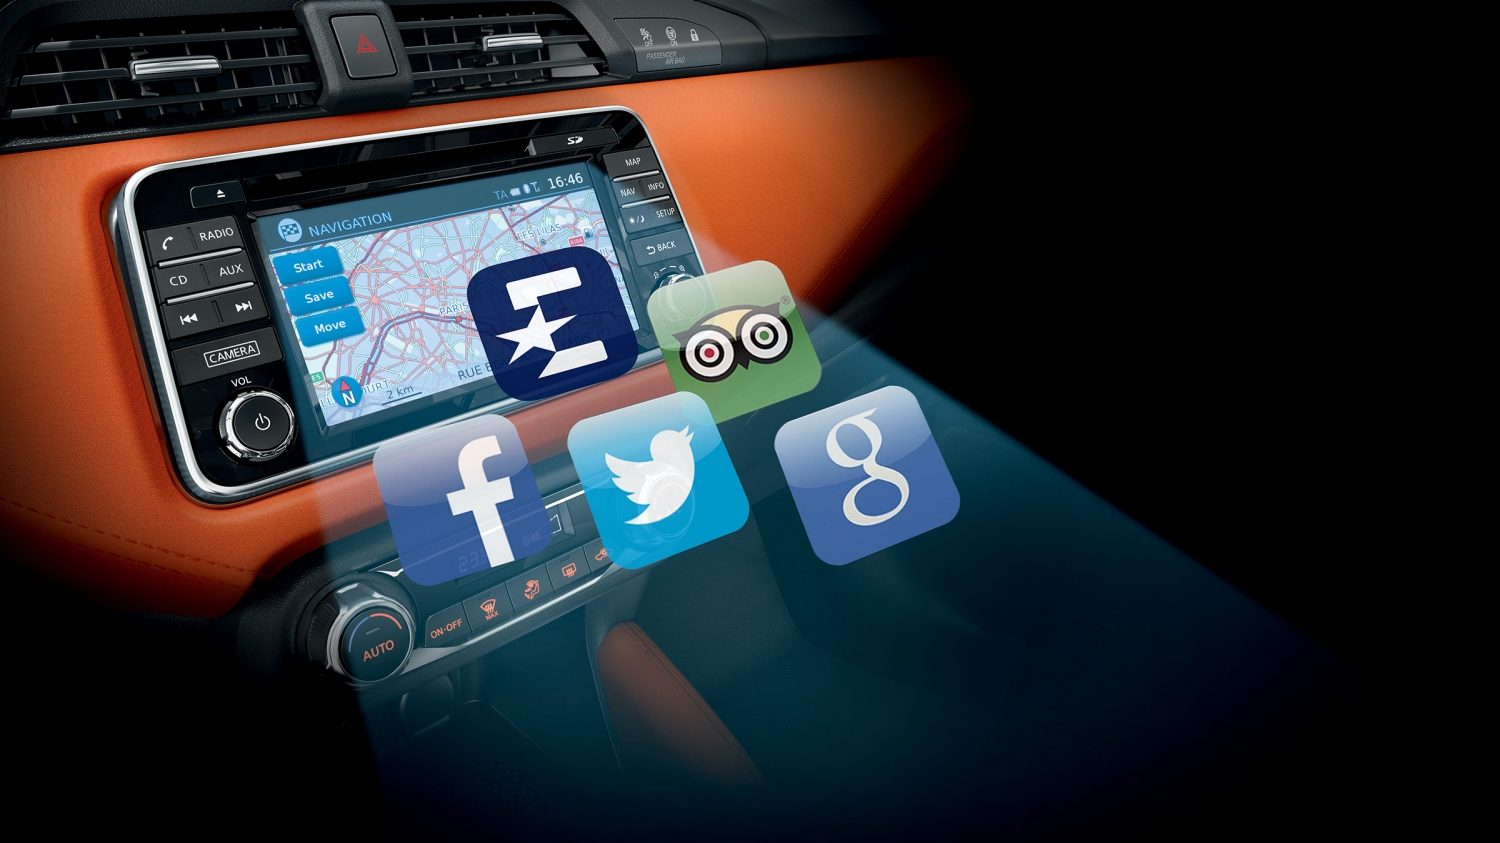 NissanConnect with Smartphone Apps